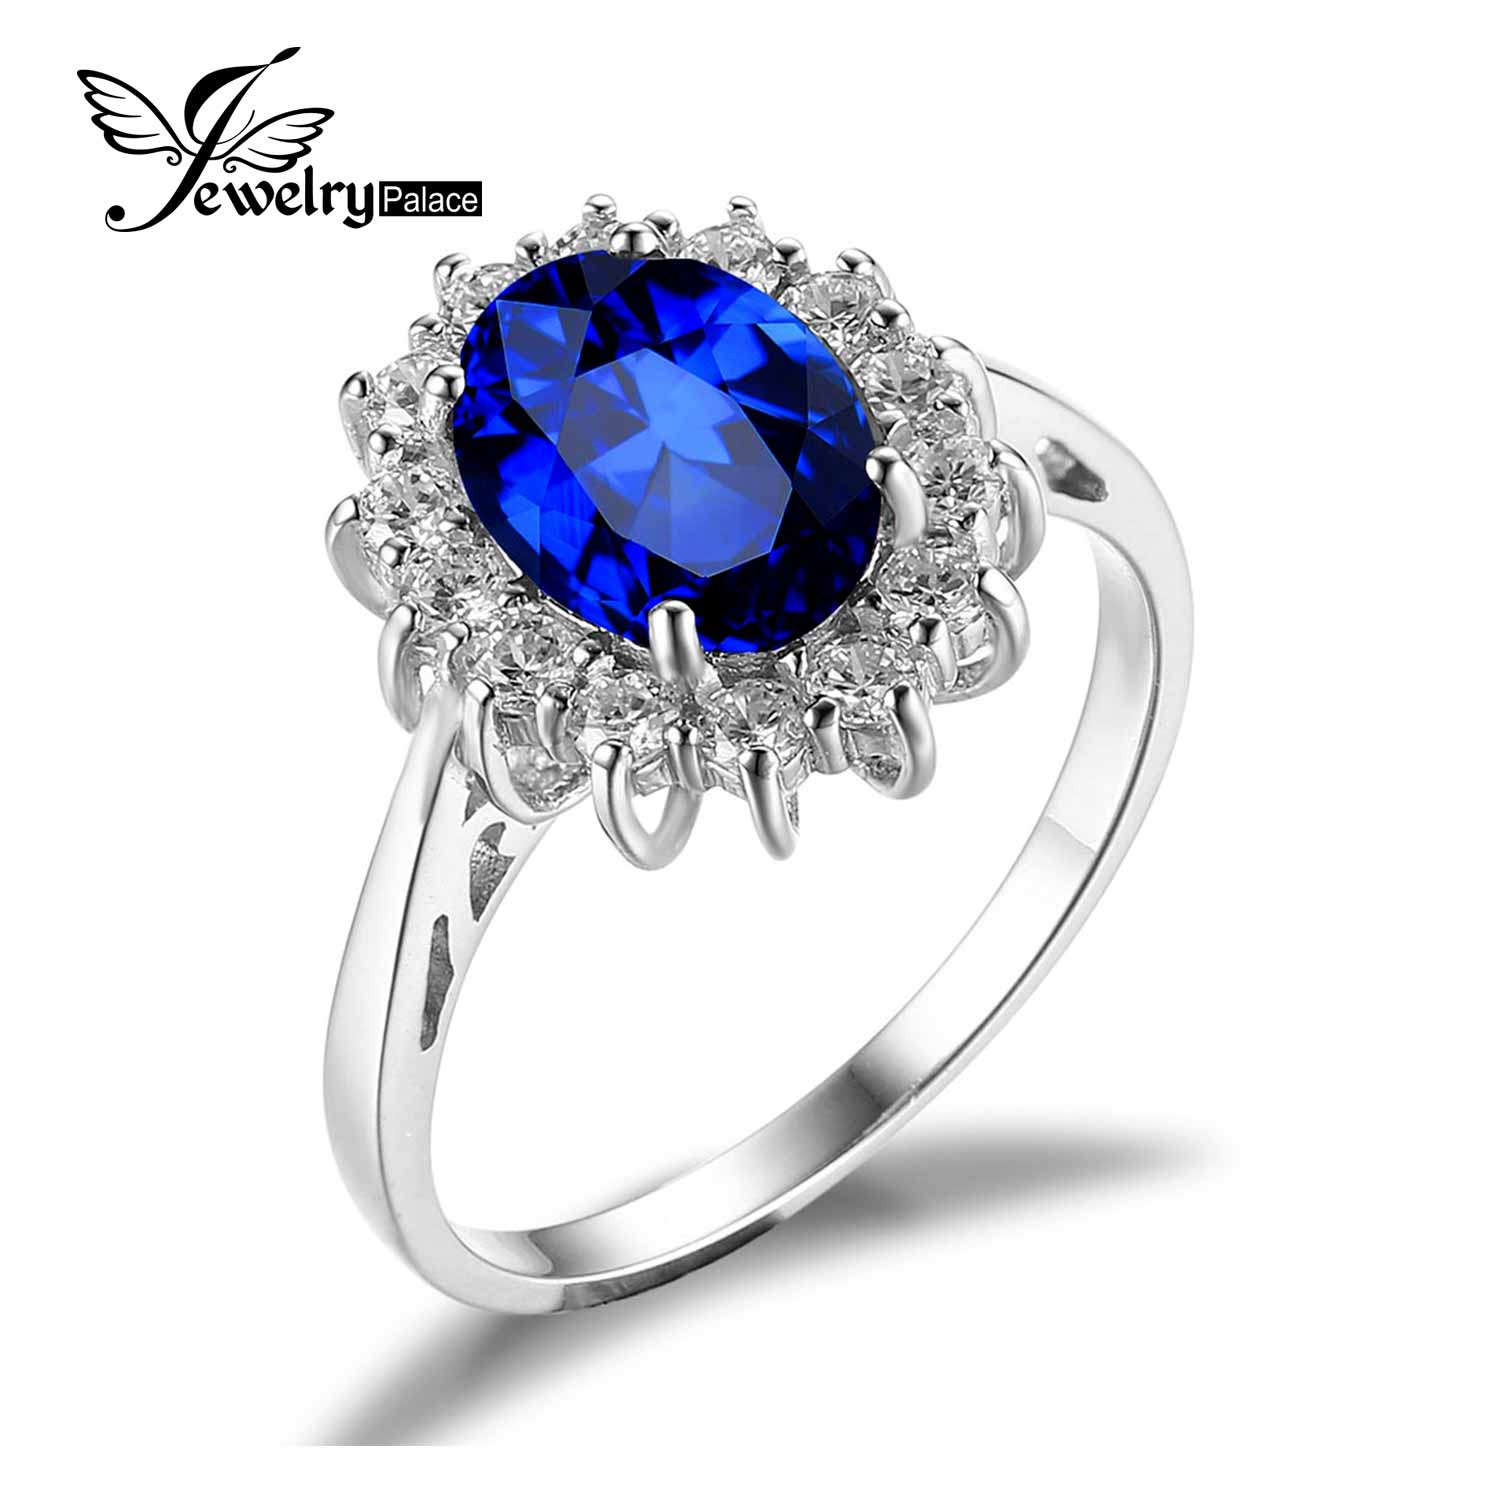 JewelryPalace Princess Diana William Kate Middleton\'s 3.2ct Created Blue Sapphire  Engagement 925 Sterling Silver Ring